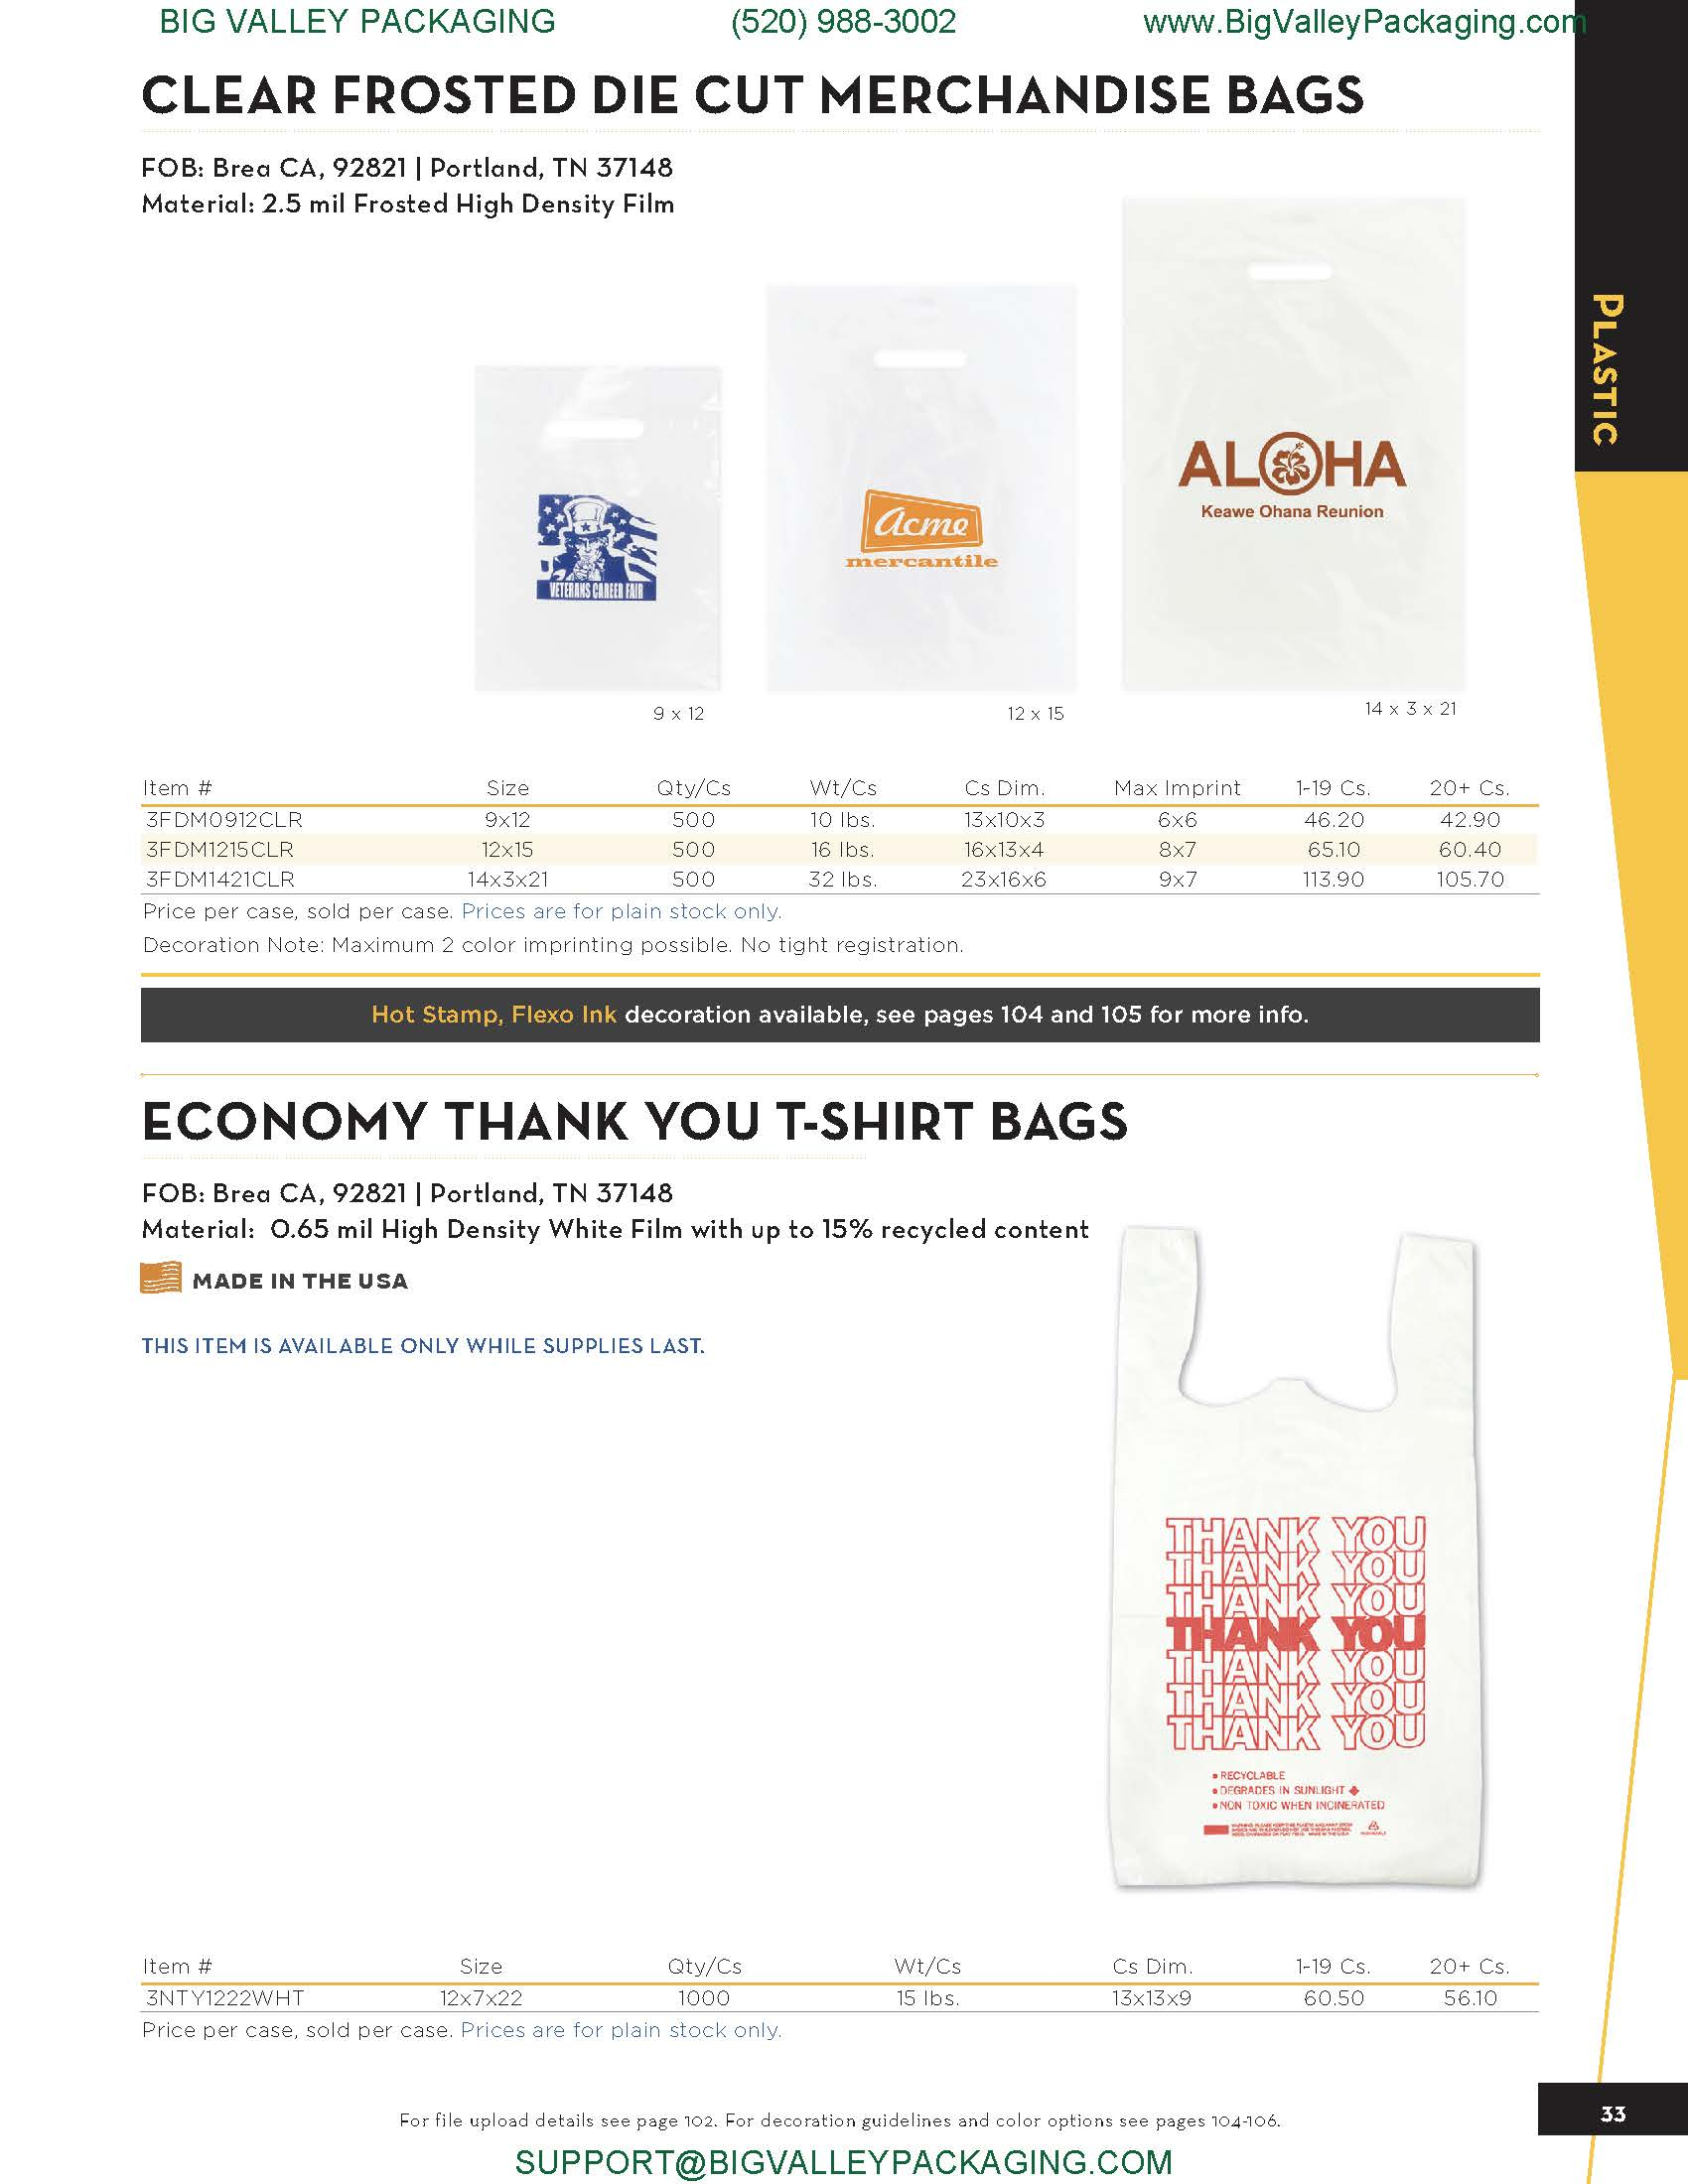 CLEAR FROSTED DIE CUT MERCHANDISE BAGS